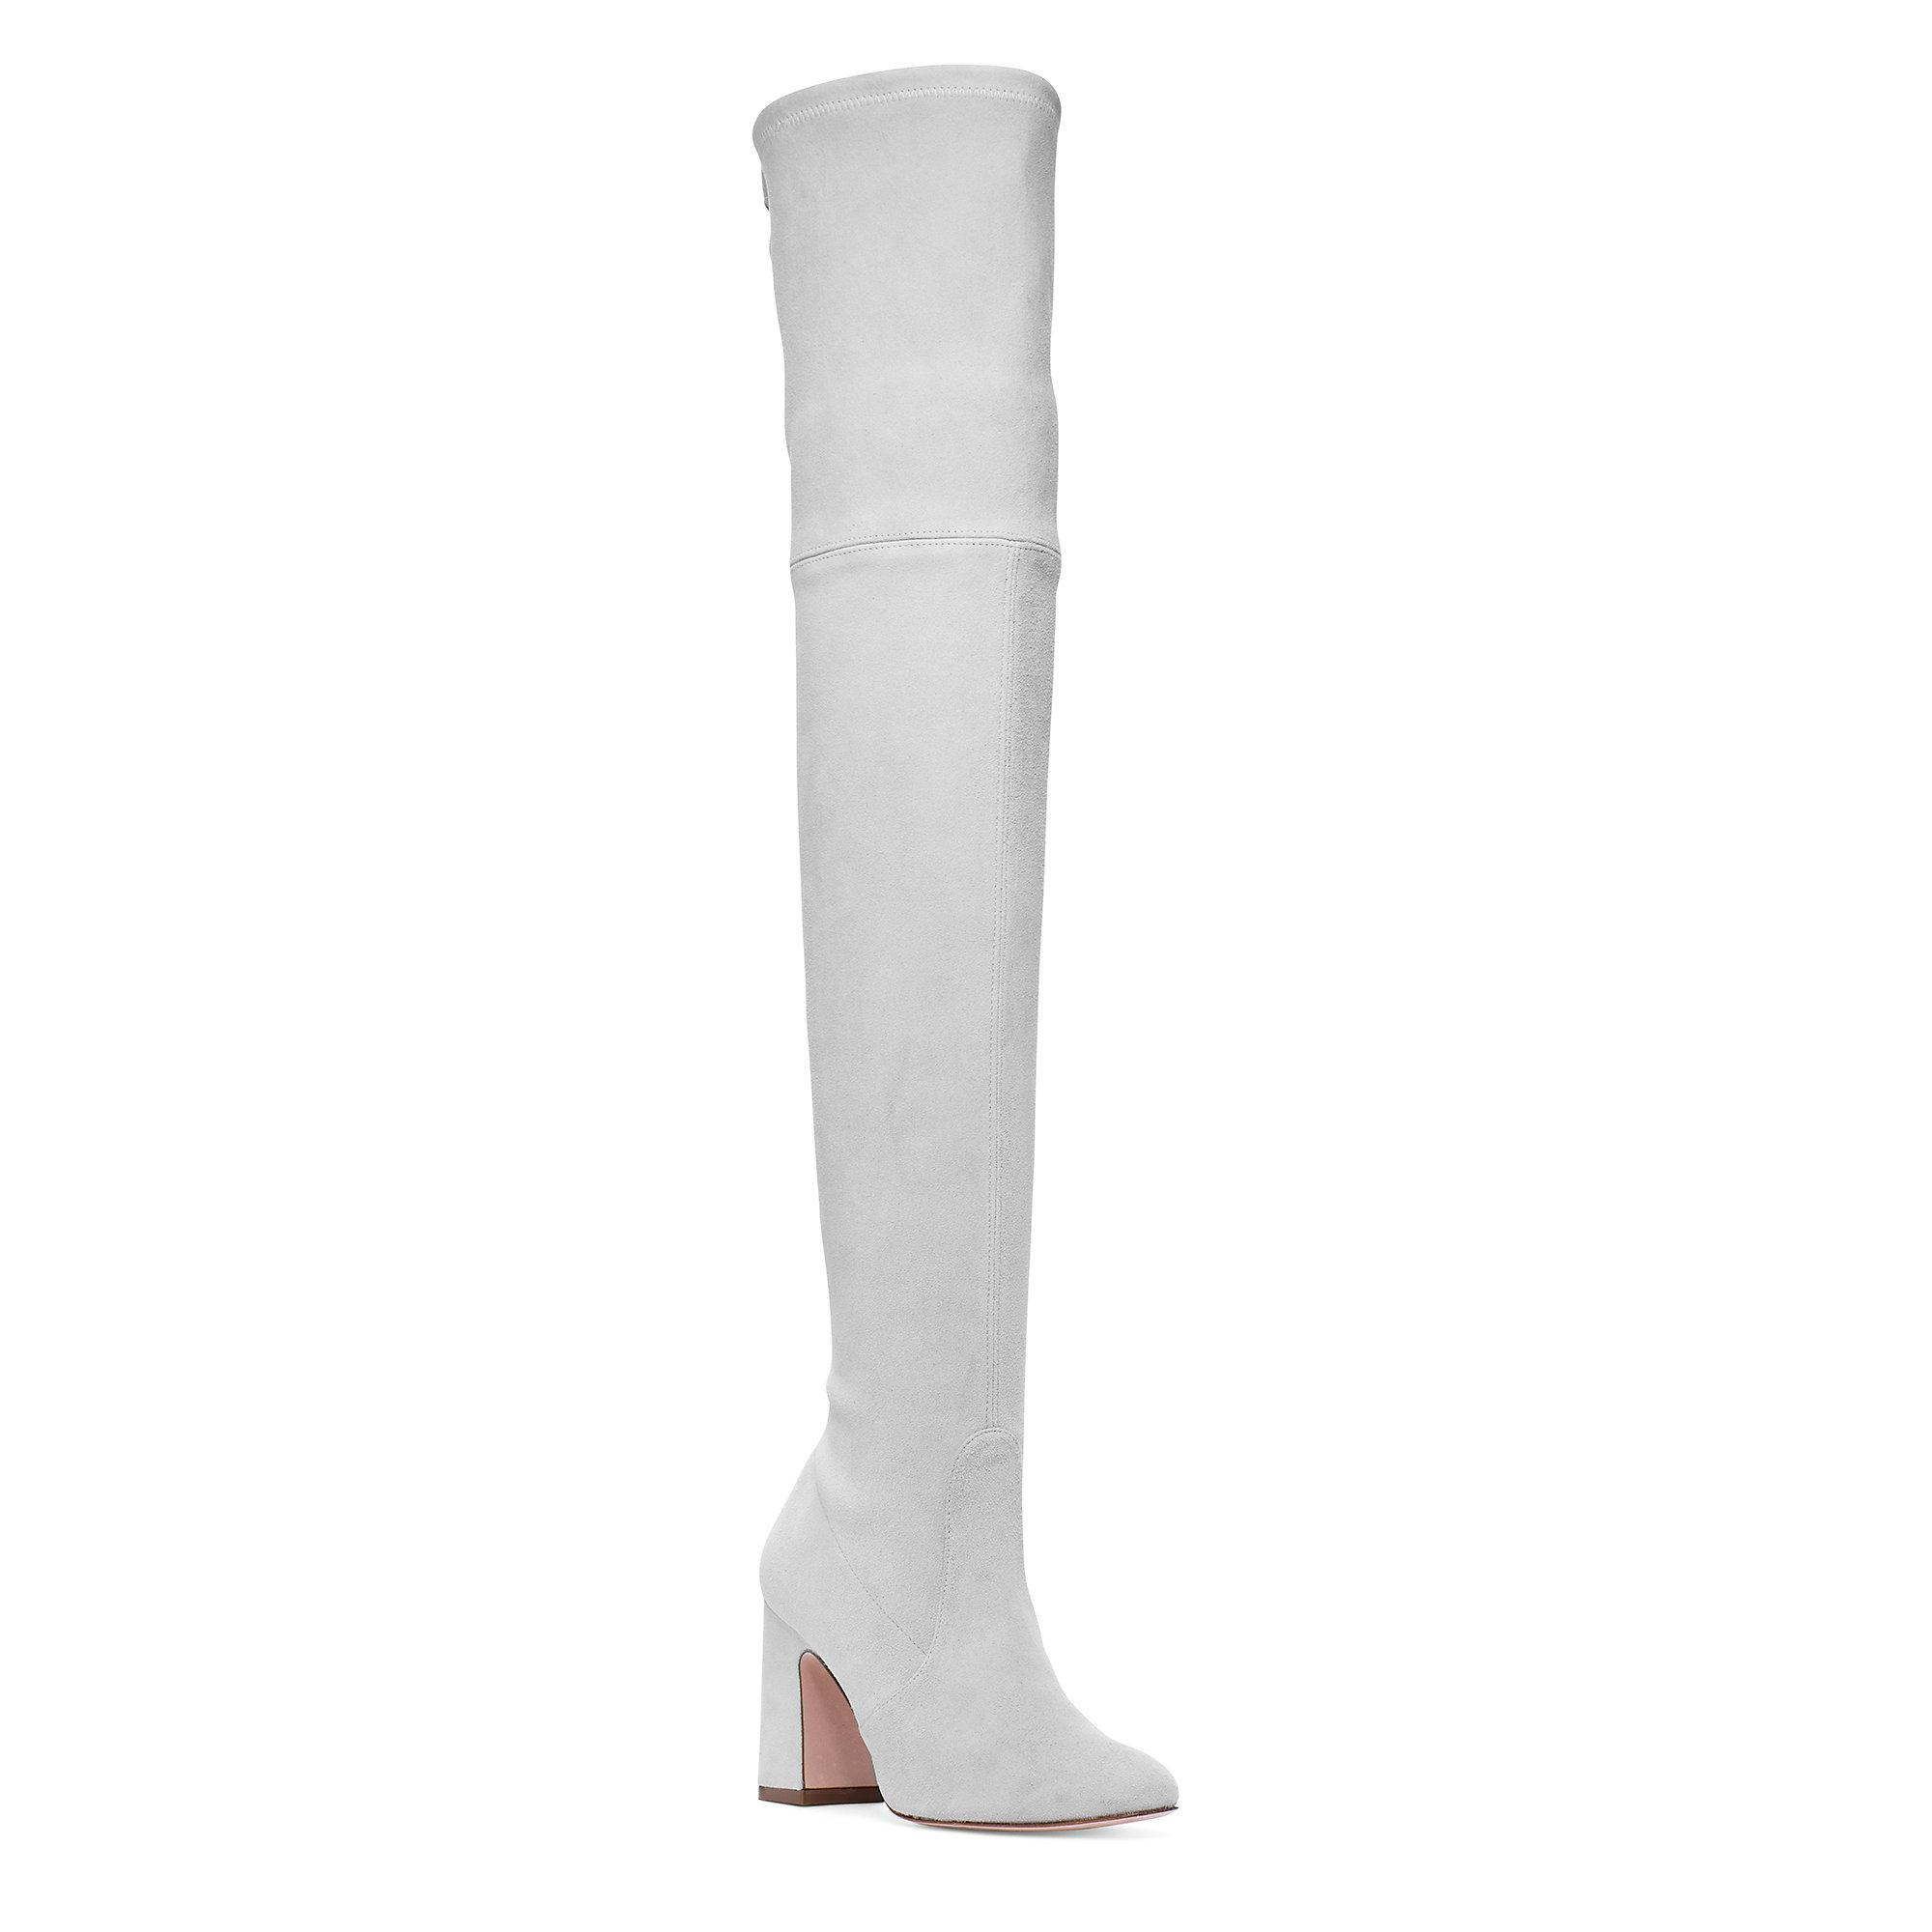 9bd48f309a2f Stuart Weitzman - Gray The Kirstie 90 Boot - Lyst. View fullscreen